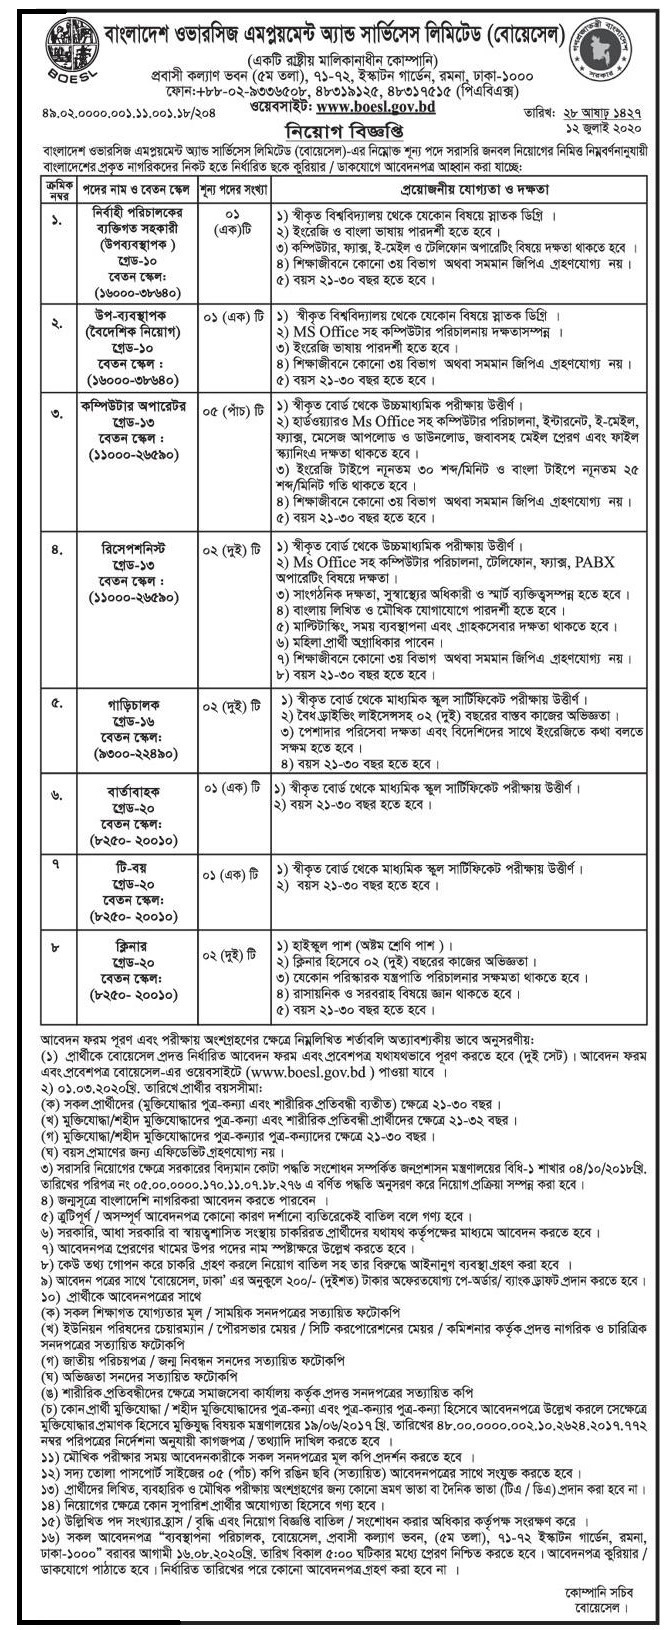 Bangladesh Overseas Employment and Services Ltd Job Circular 2020